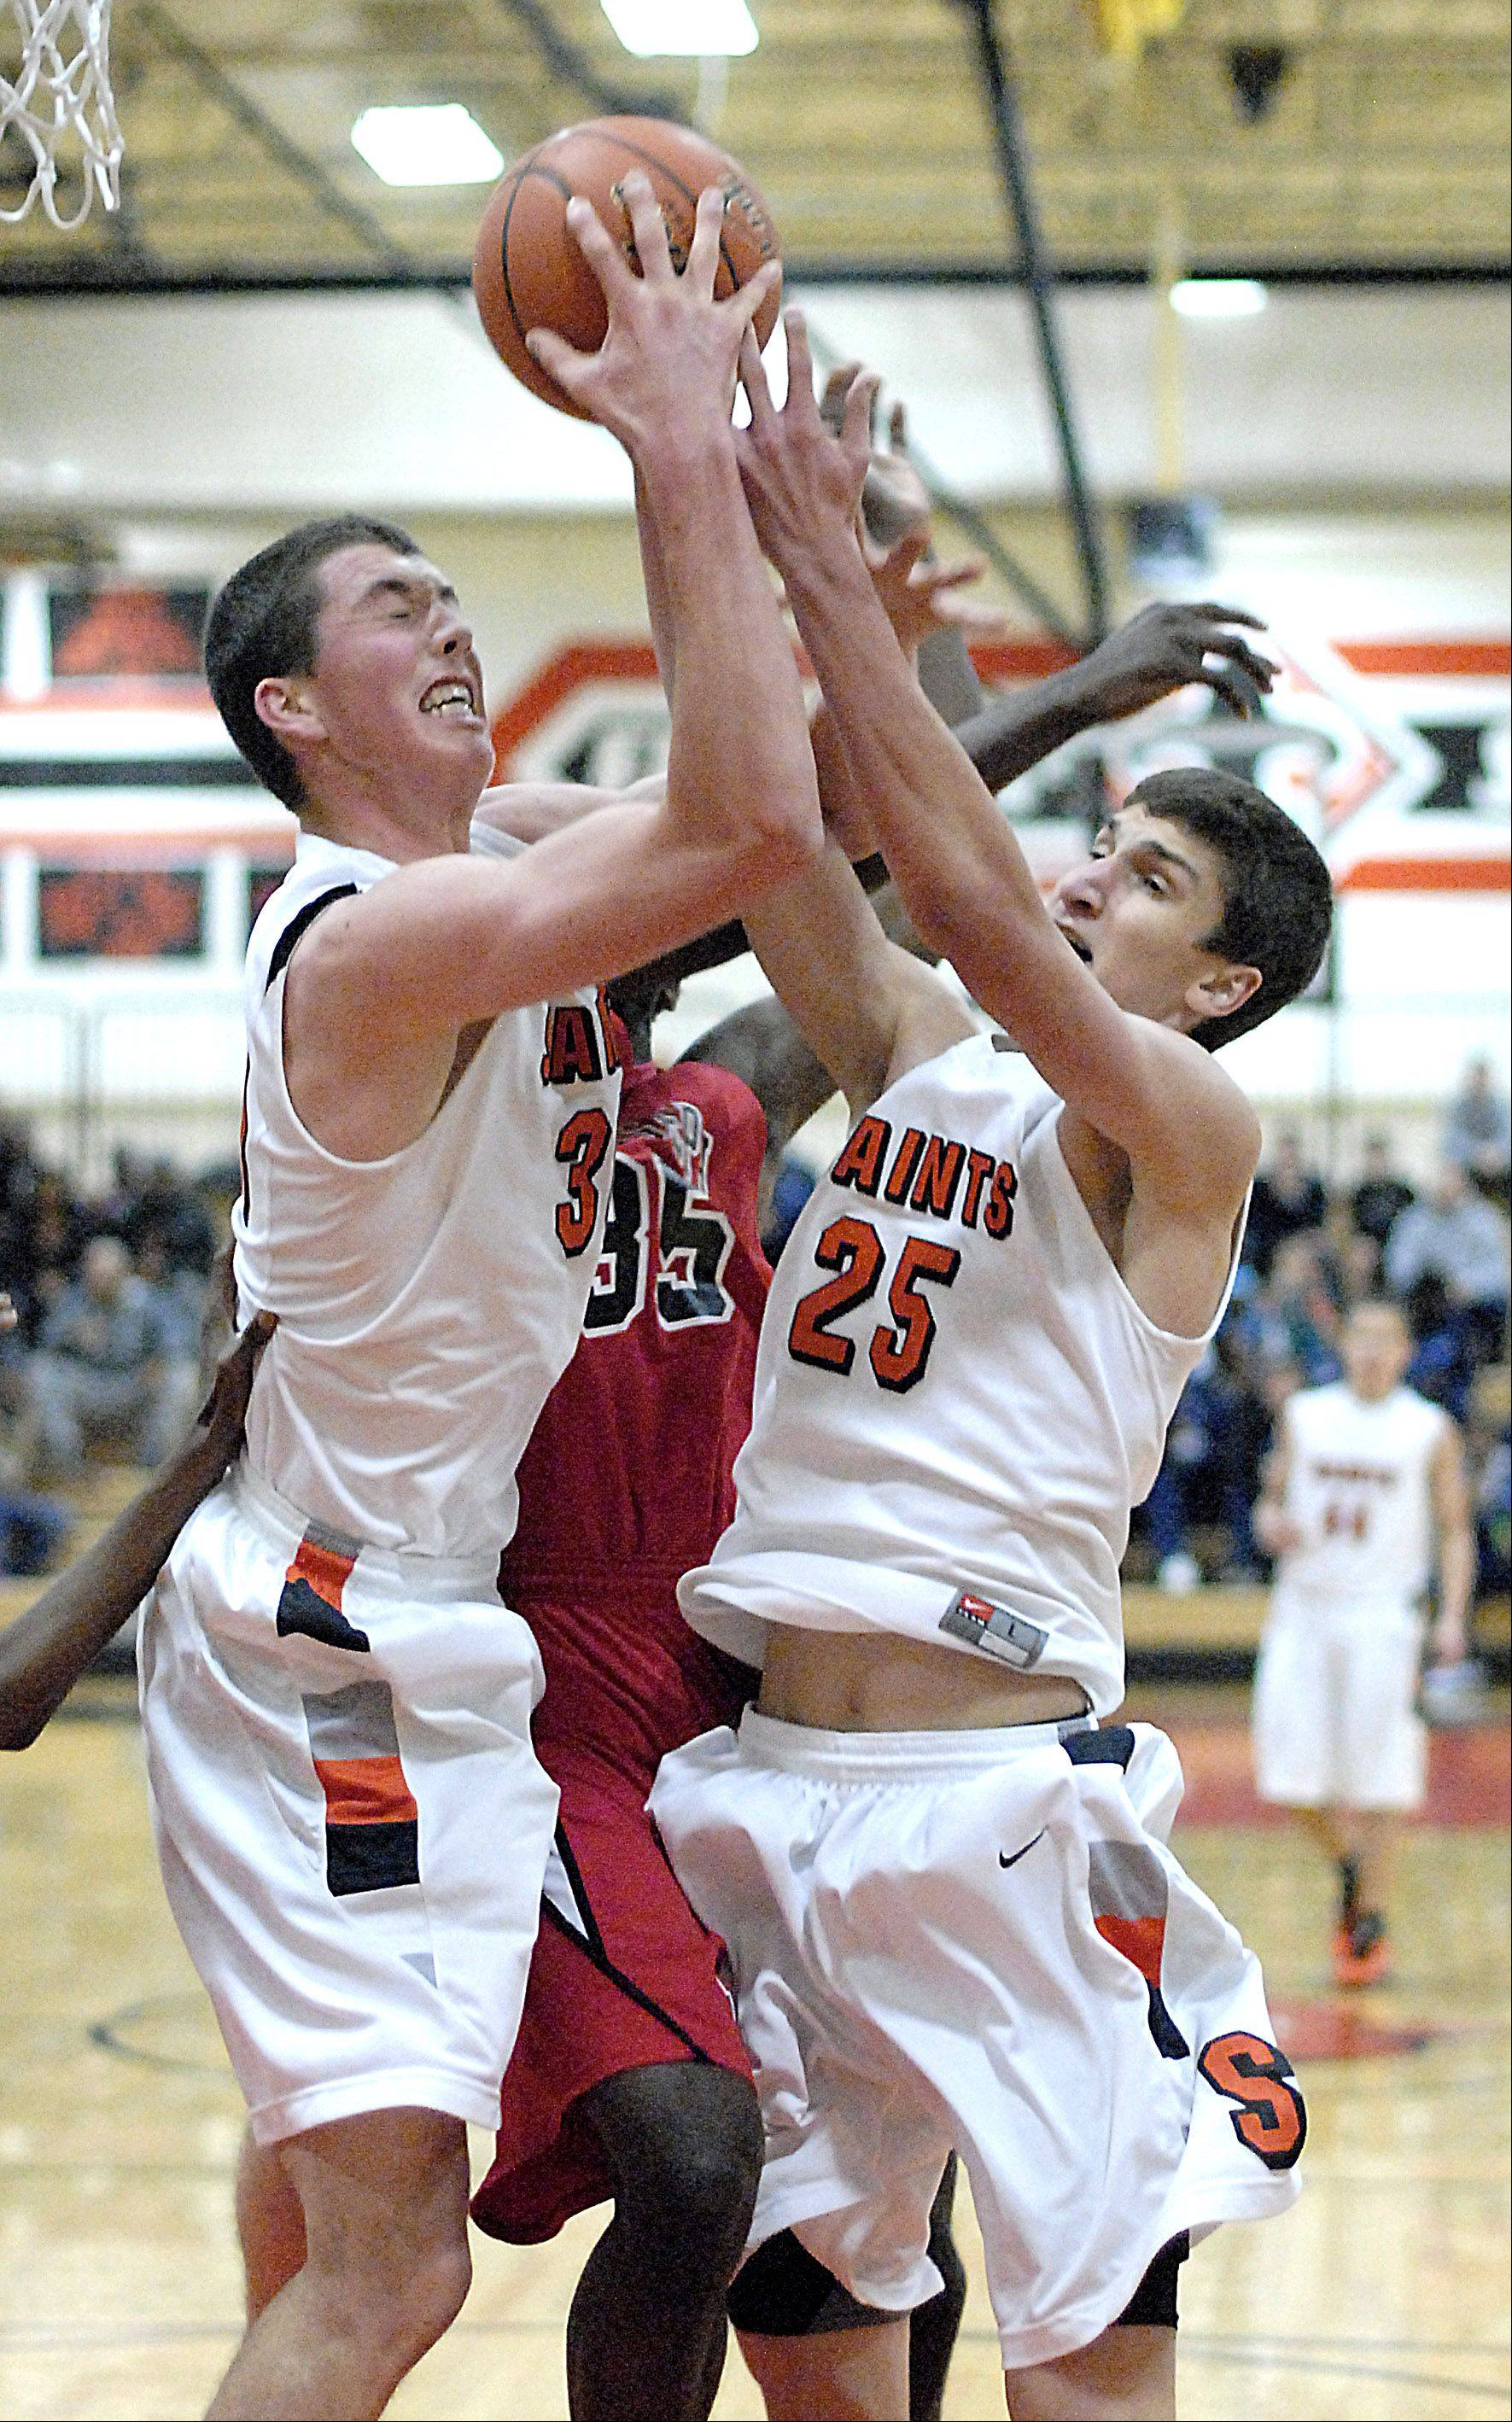 St. Charles East's David Mason and Dan Wilkerson sandwich St. Joseph's Karriem Simmons as they fight for a rebound on Friday.